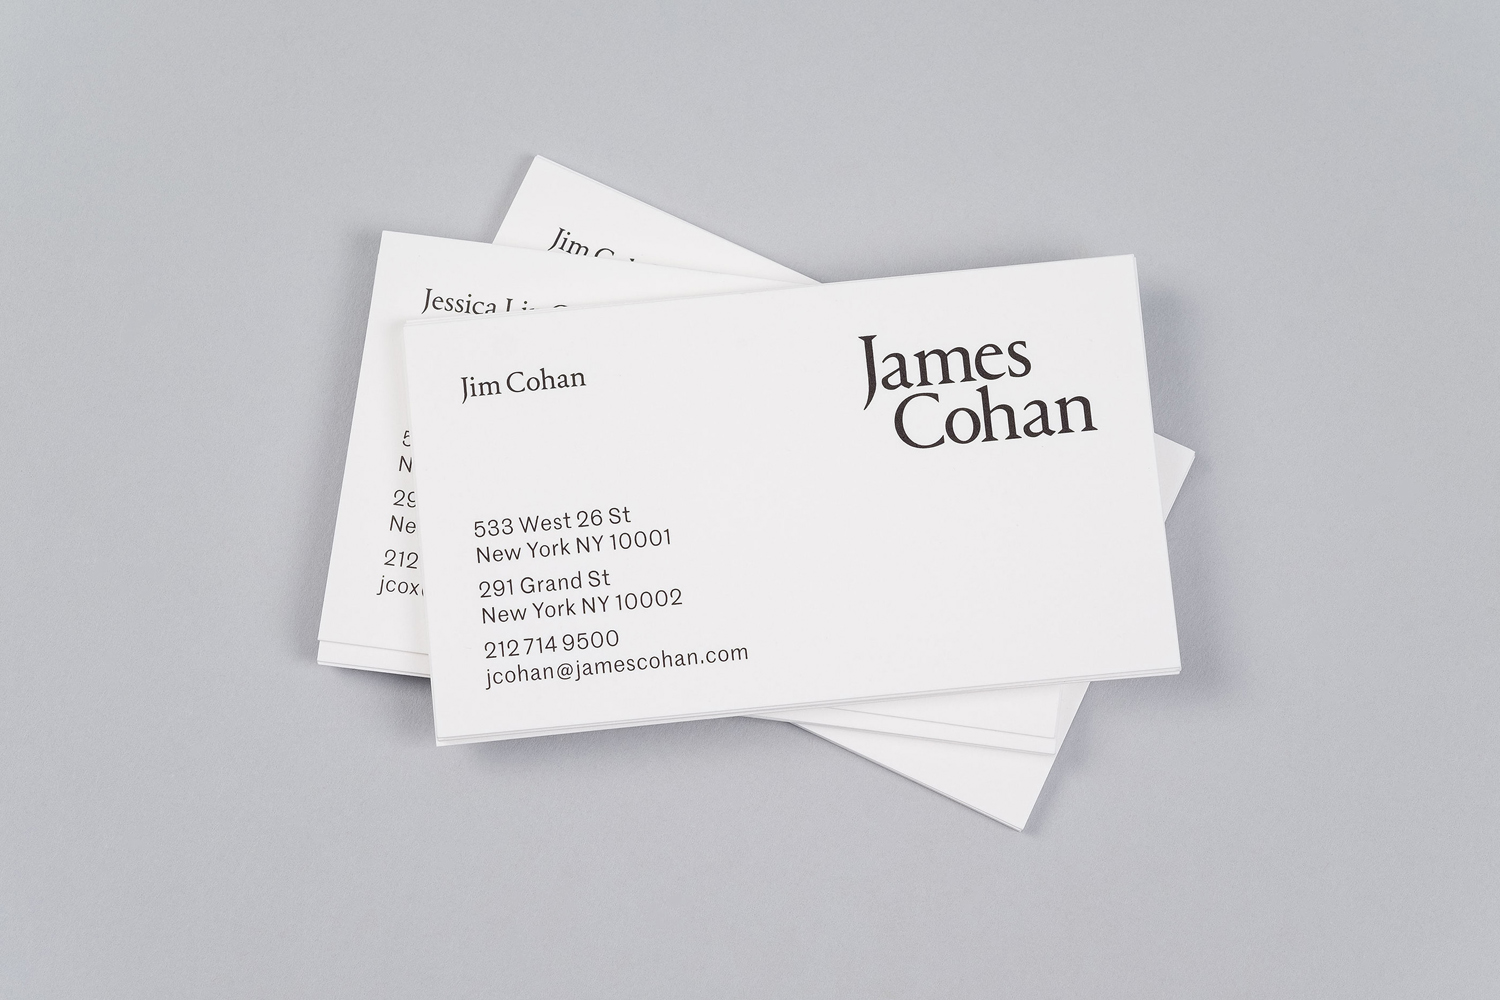 Business cards for New York gallery James Cohan designed by Project Projects